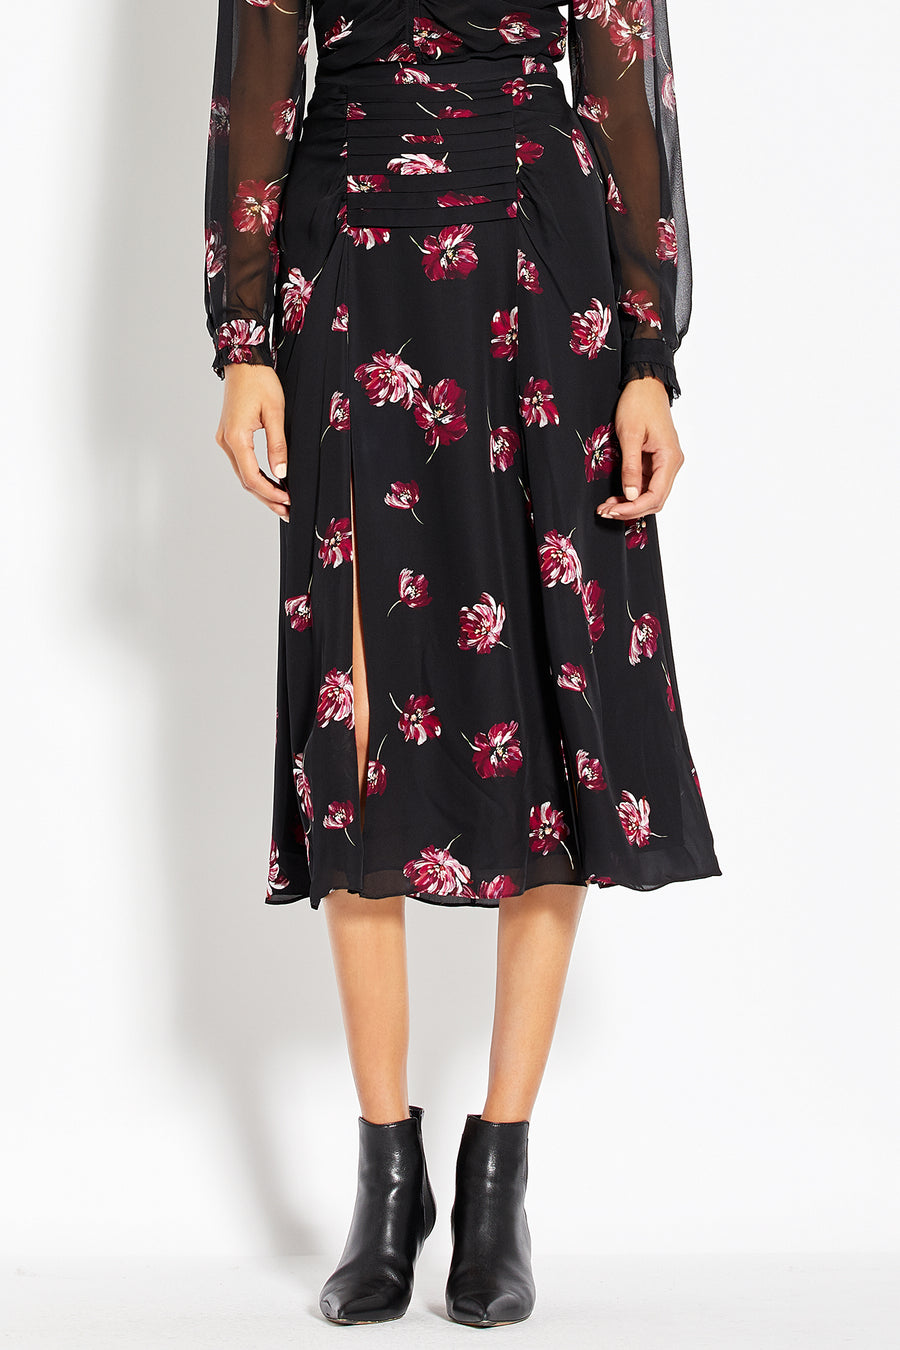 Tuck Skirt - Mulberry Multi